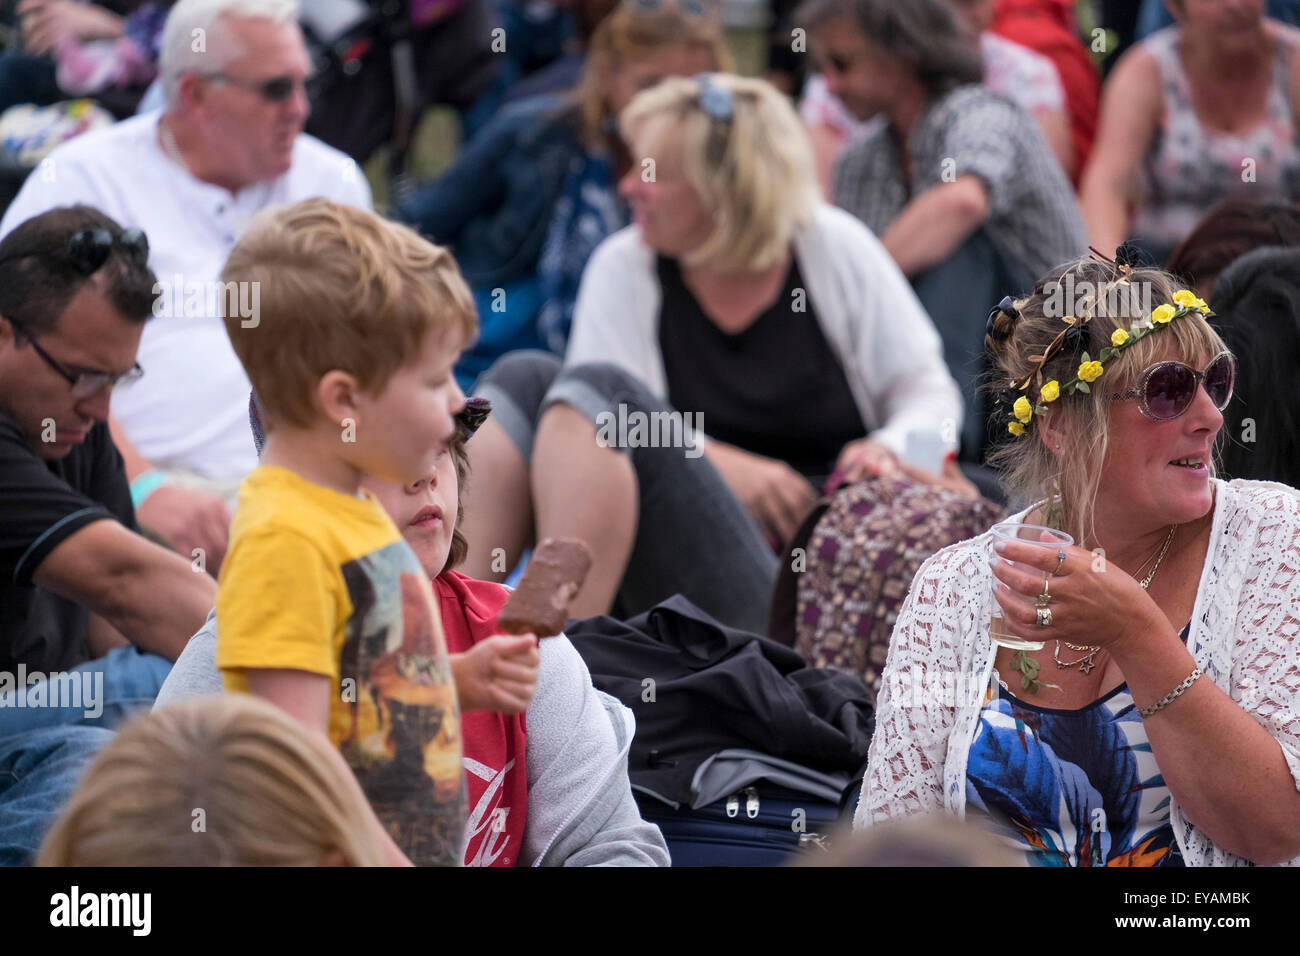 Bognor Regis, West Sussex, UK. 25th July, 2015. The Rox music and arts festival on the sea front at Bognor Regis - Stock Image